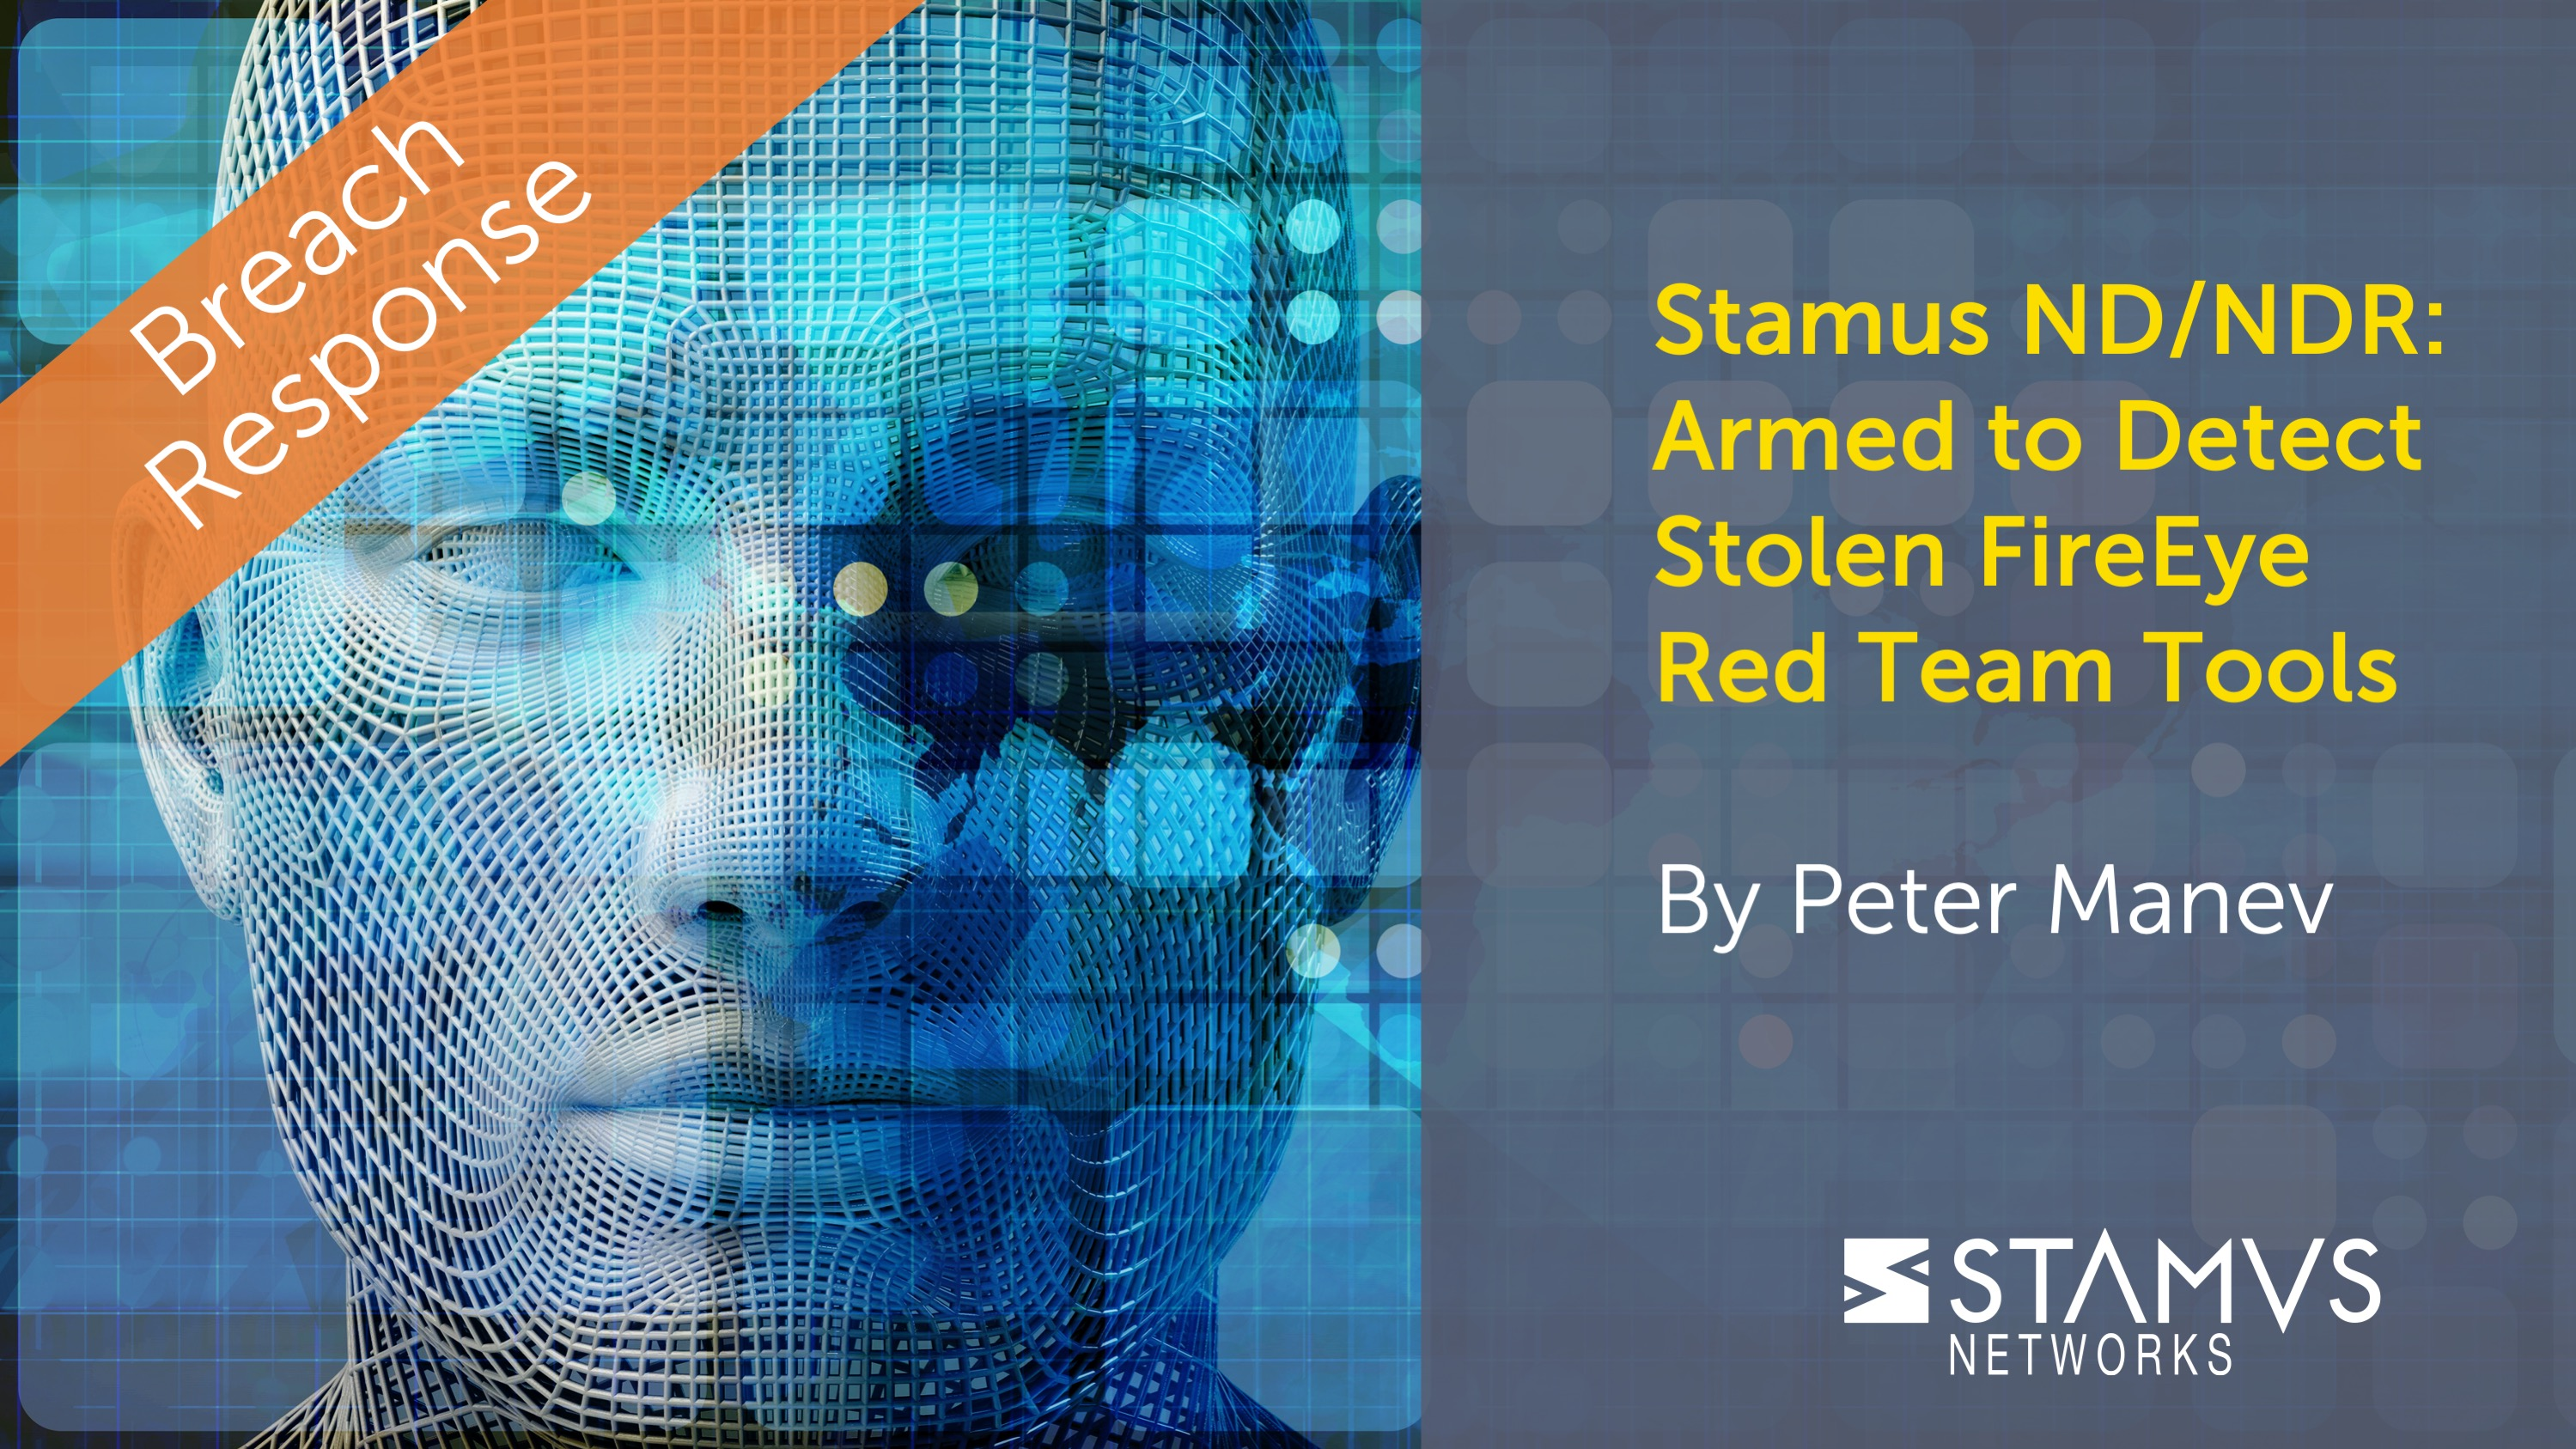 Breach Response - Stamus ND/NDR users are Armed to Detect Stolen FireEye Red Team Tools